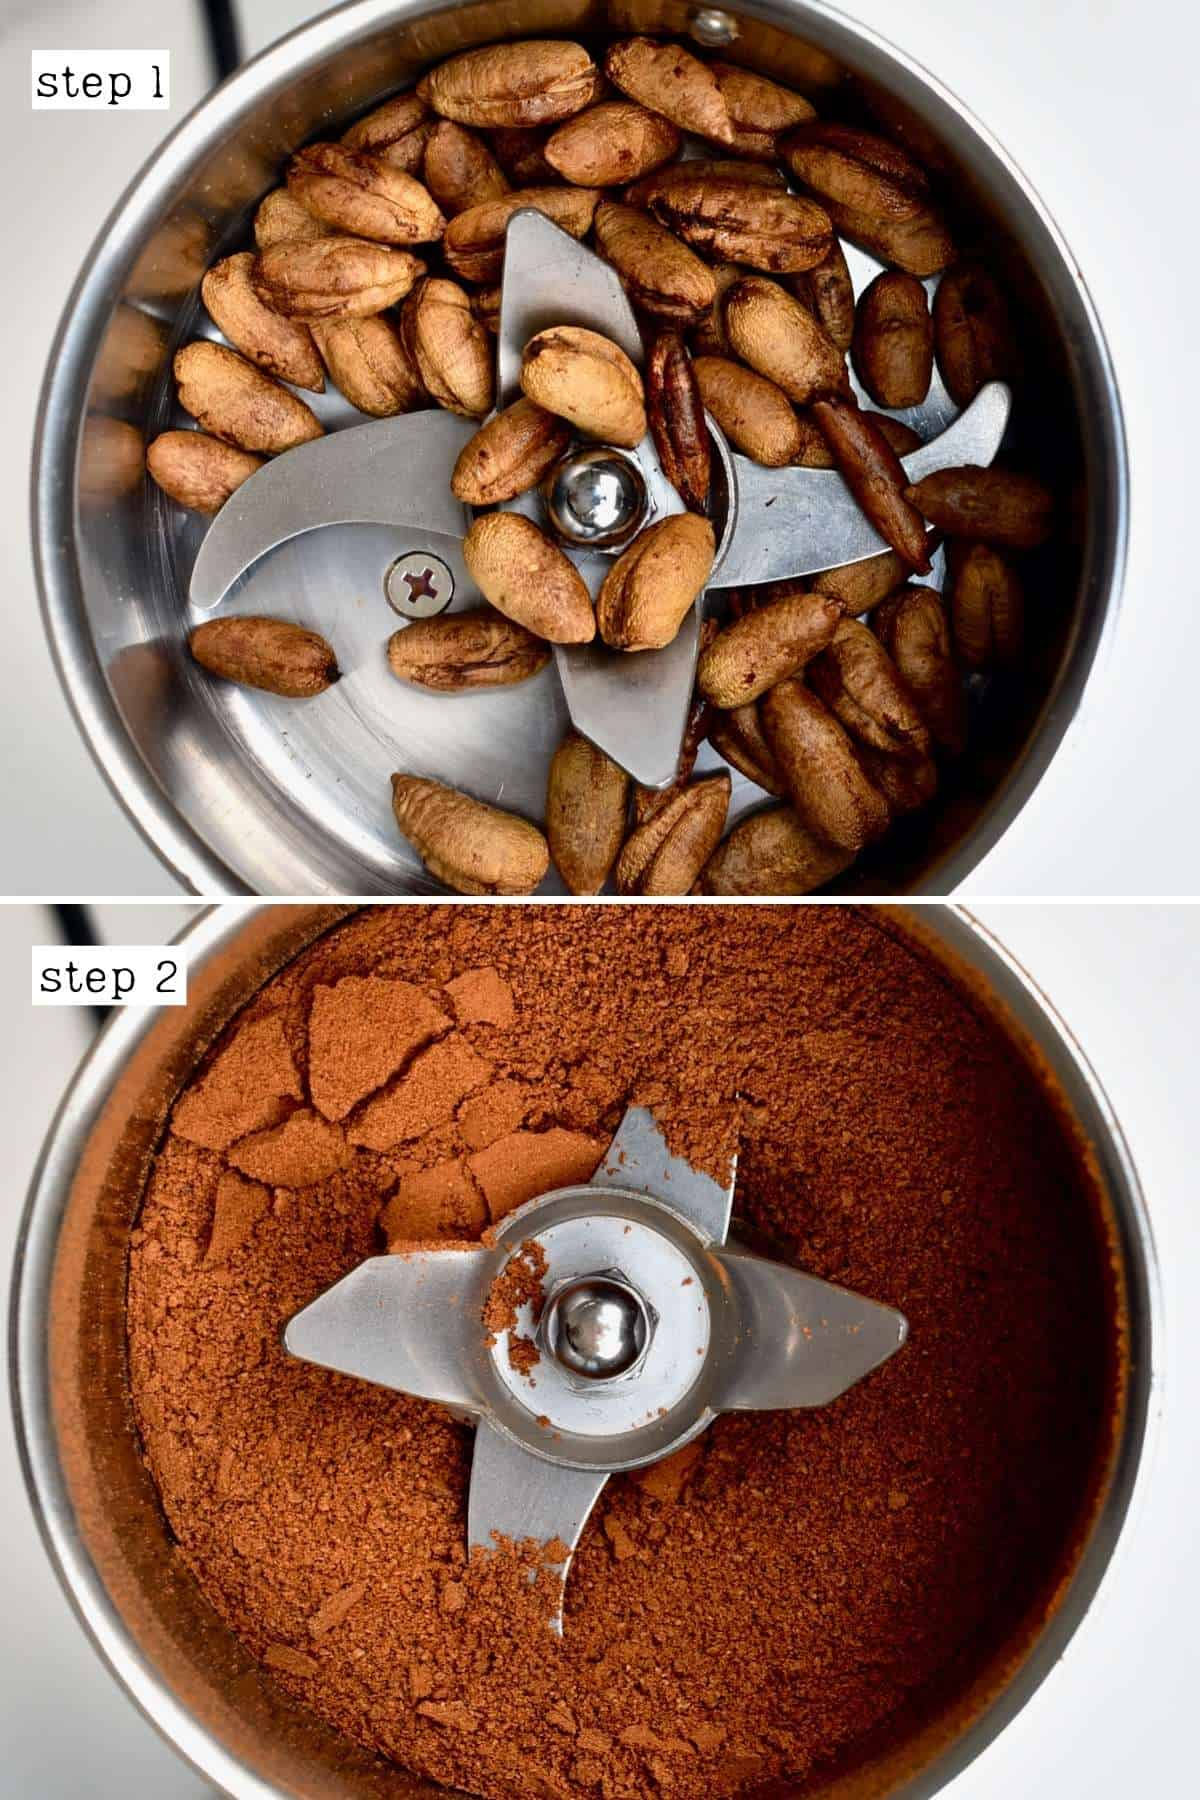 Steps for grinding date seed powder